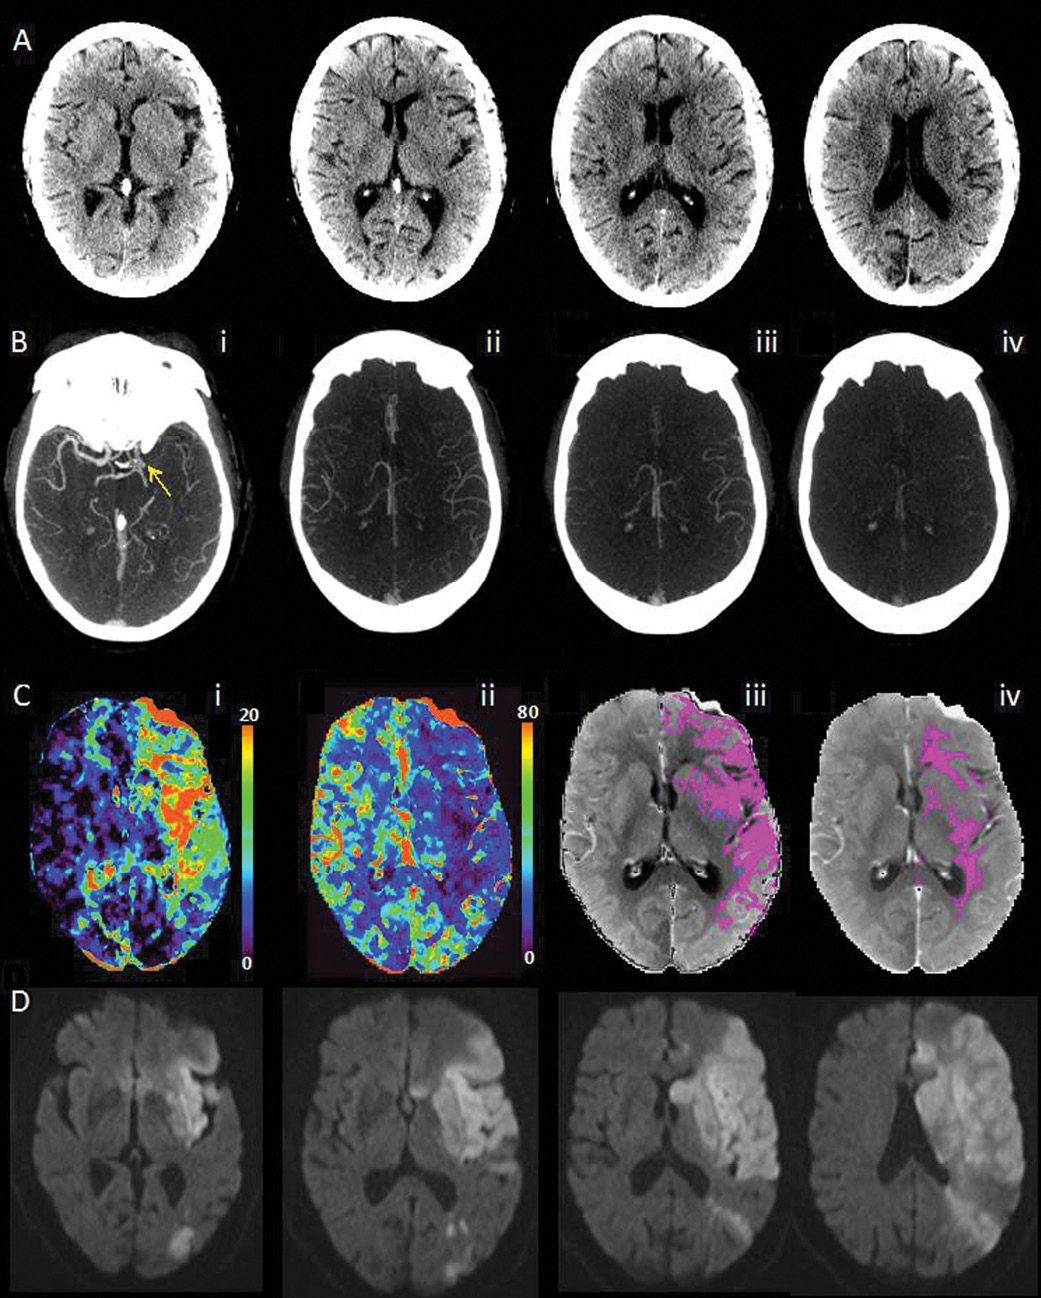 Multimodal CT images obtained 2 hours 18 minutes after symptom onset in an 87-year-old woman with an NIH Stroke Scale of 15 and left hemisphere symptoms.